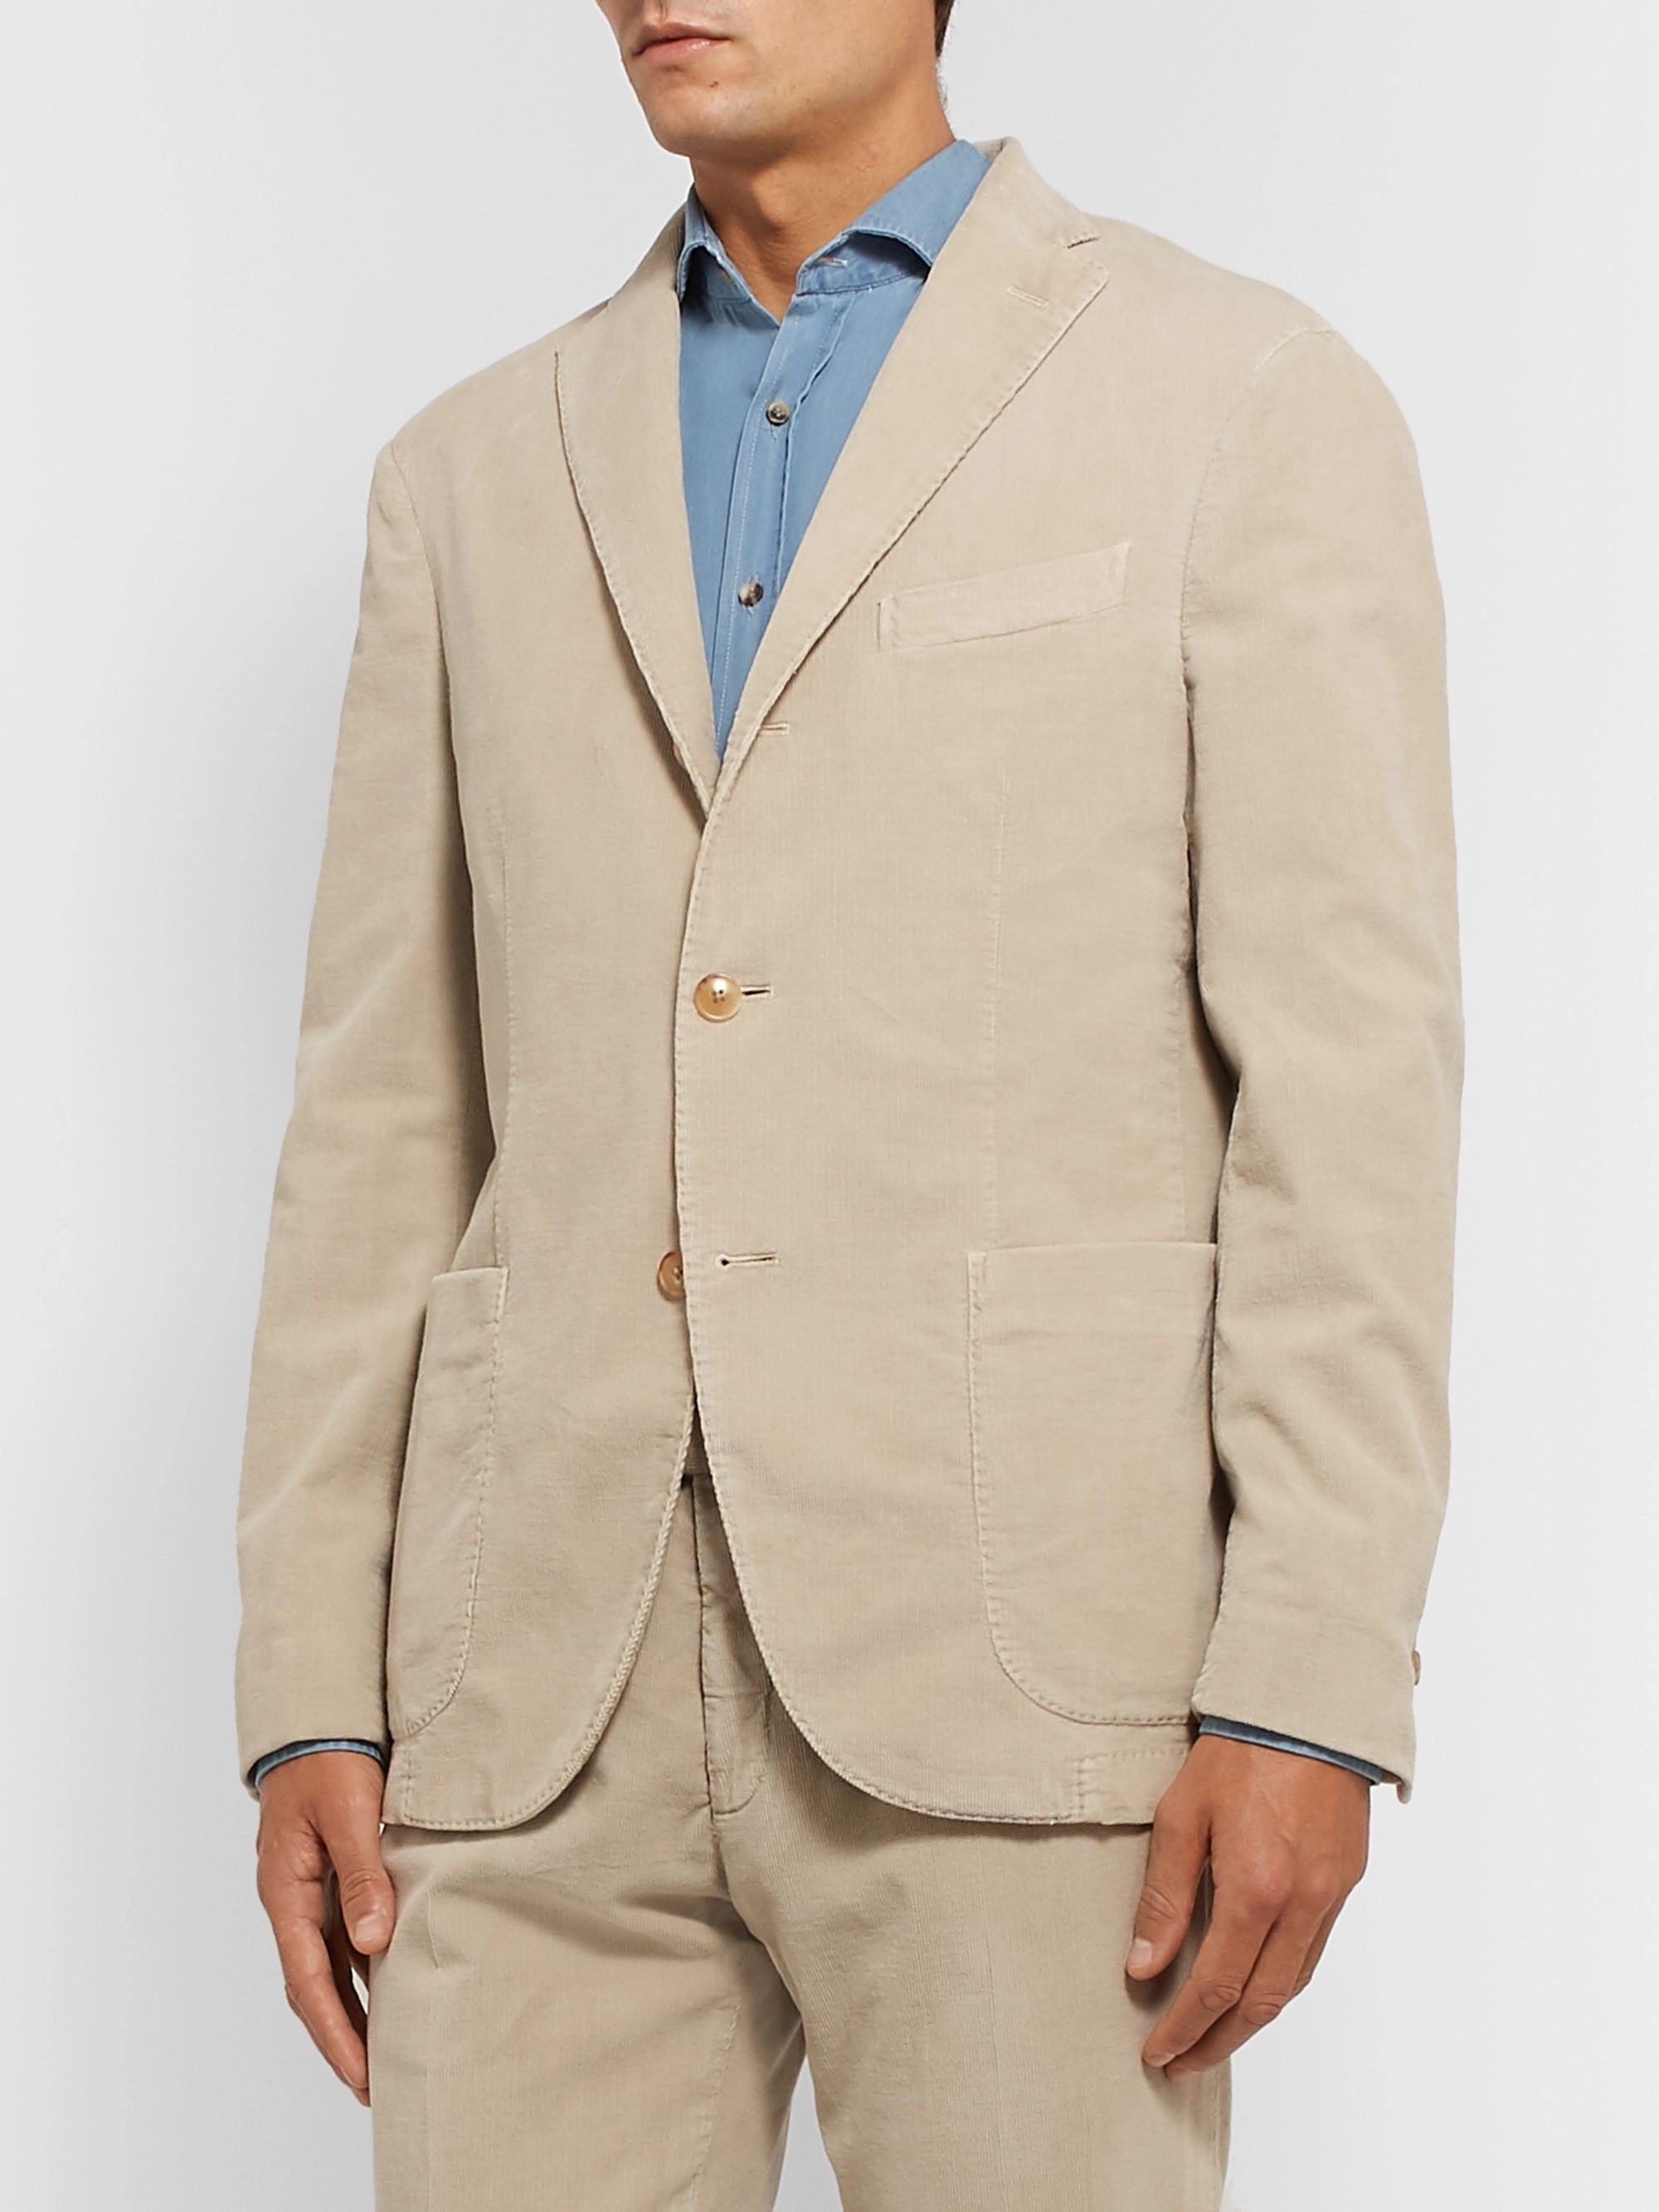 Boglioli Army-Green K-Jacket Slim-Fit Unstructured Cotton-Blend Corduroy Suit Jacket